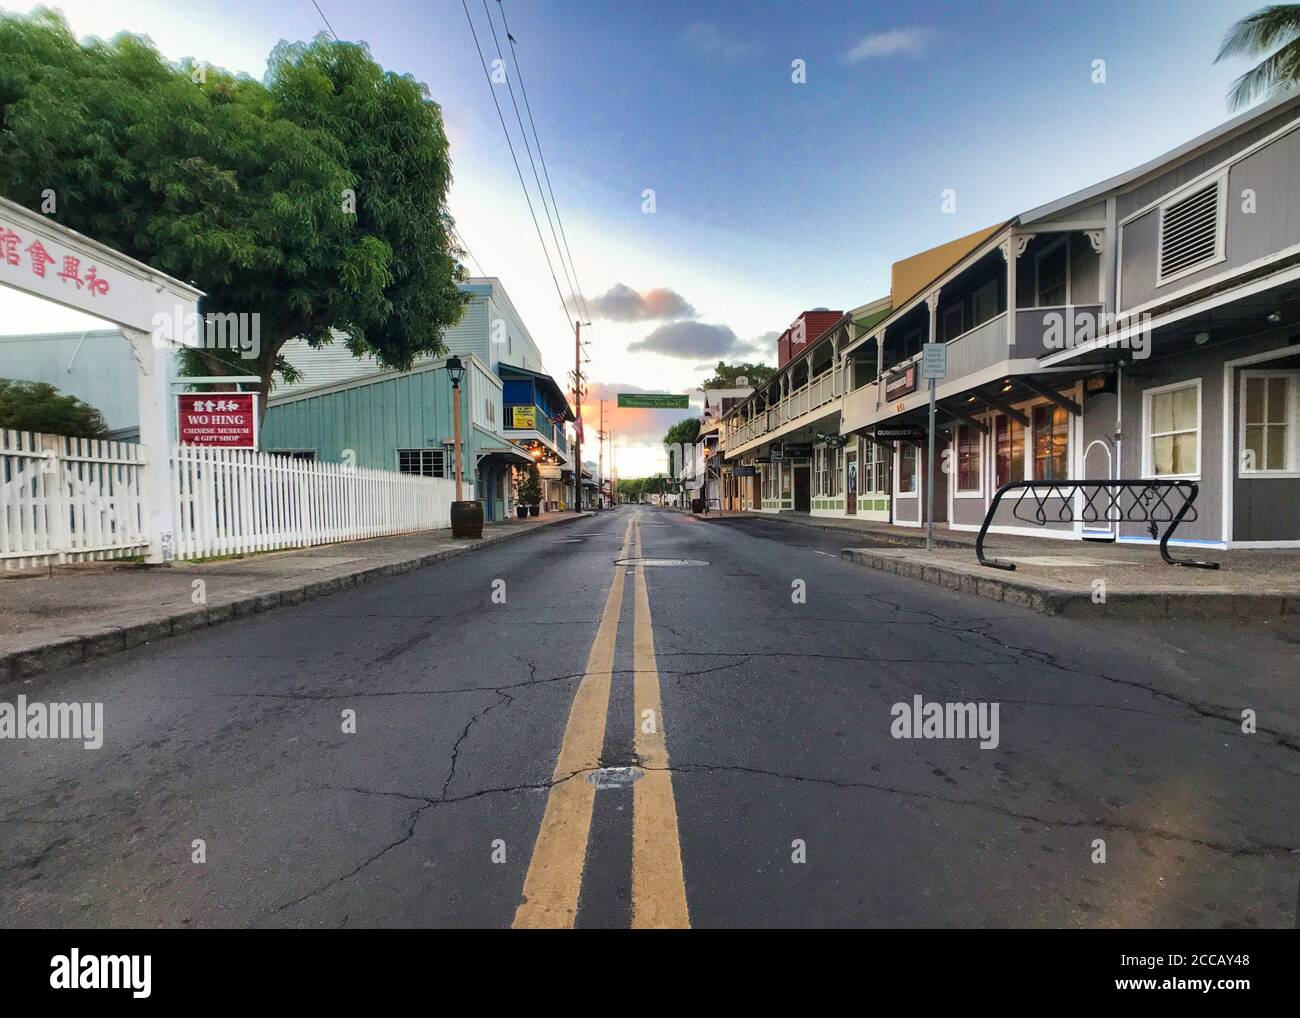 Deserted streets and shopping area in Lahaina during Covid 19 pandemic. Stock Photo